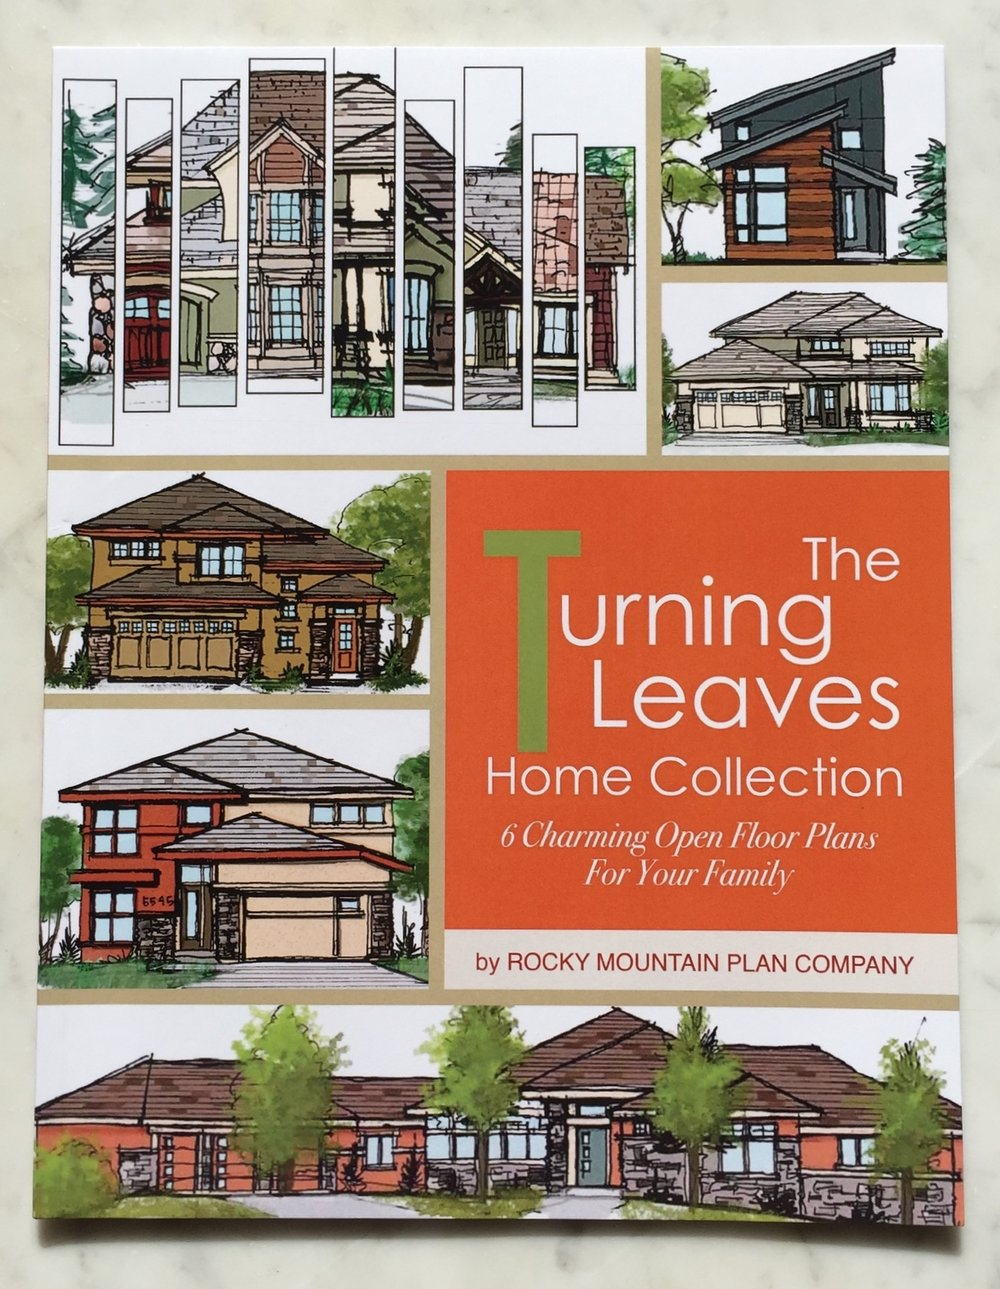 SIGN UP FOR YOUR FREE PDF - Plus, when you join our email list, we'll send you a free PDF of our popular Turning Leaves Collection, featuring 6 charming and open floor plan concepts! Just let us know your best email address below and we'll send your free PDF right over!